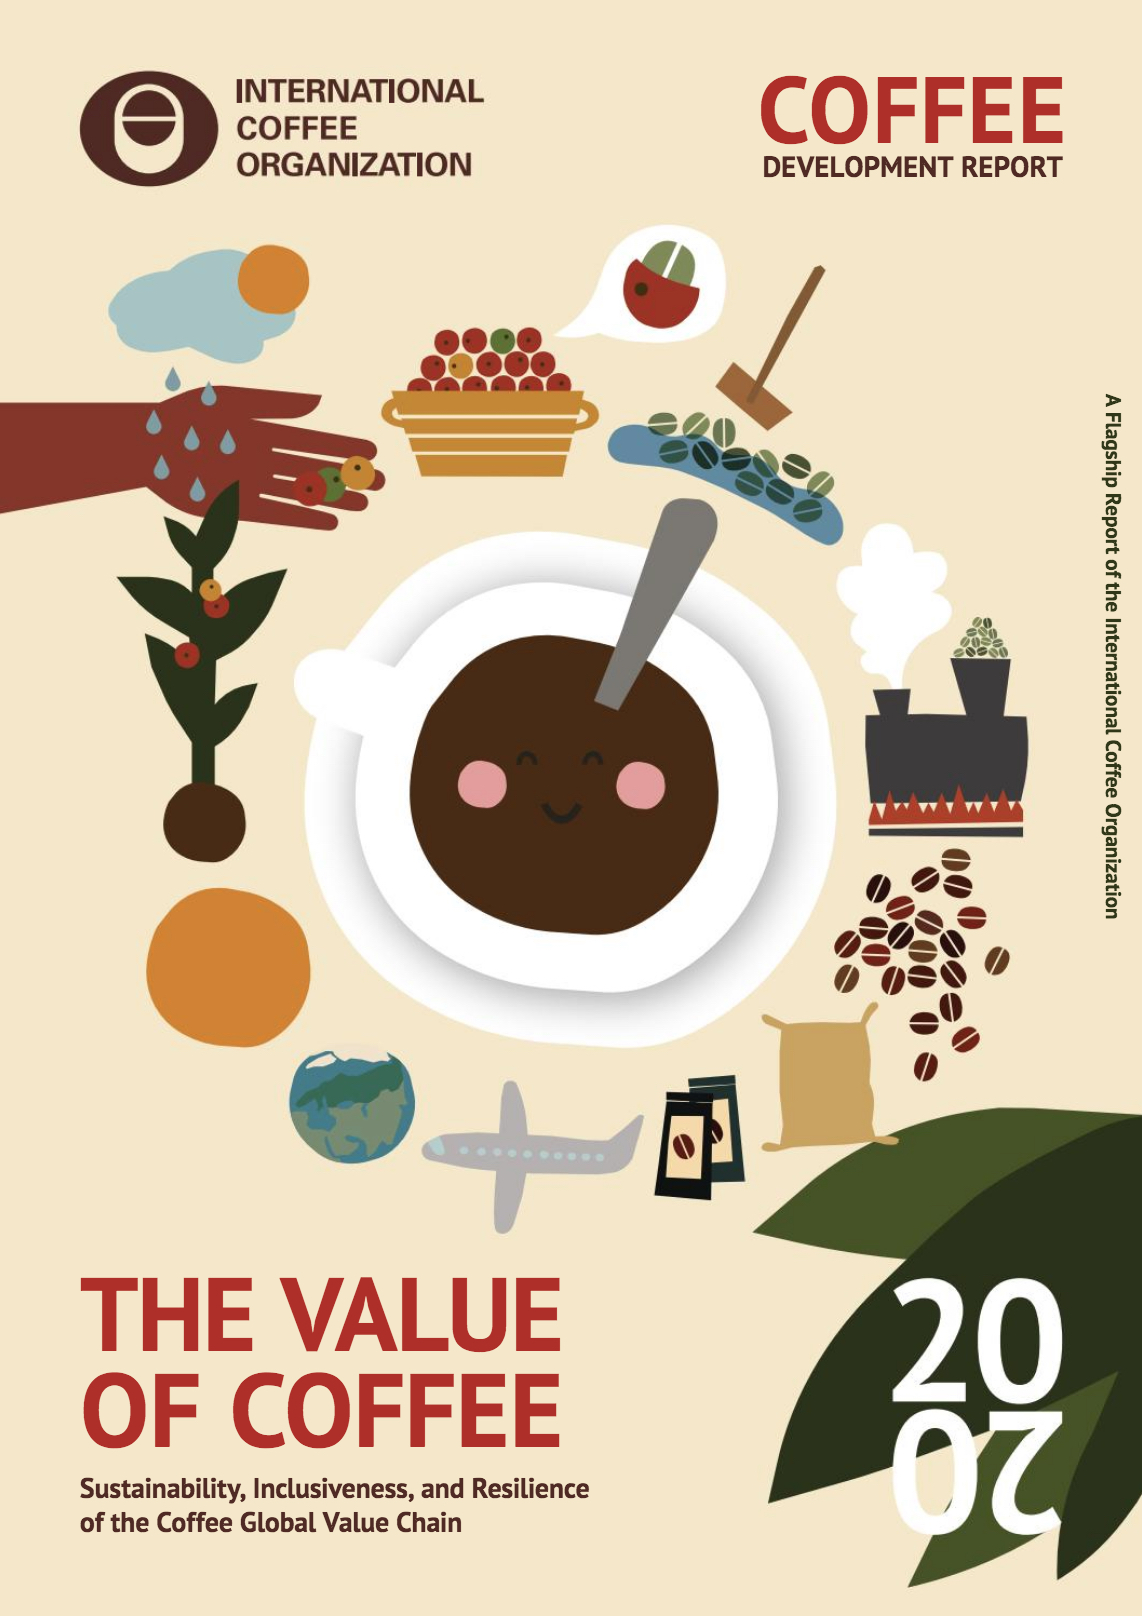 The Value of Coffee